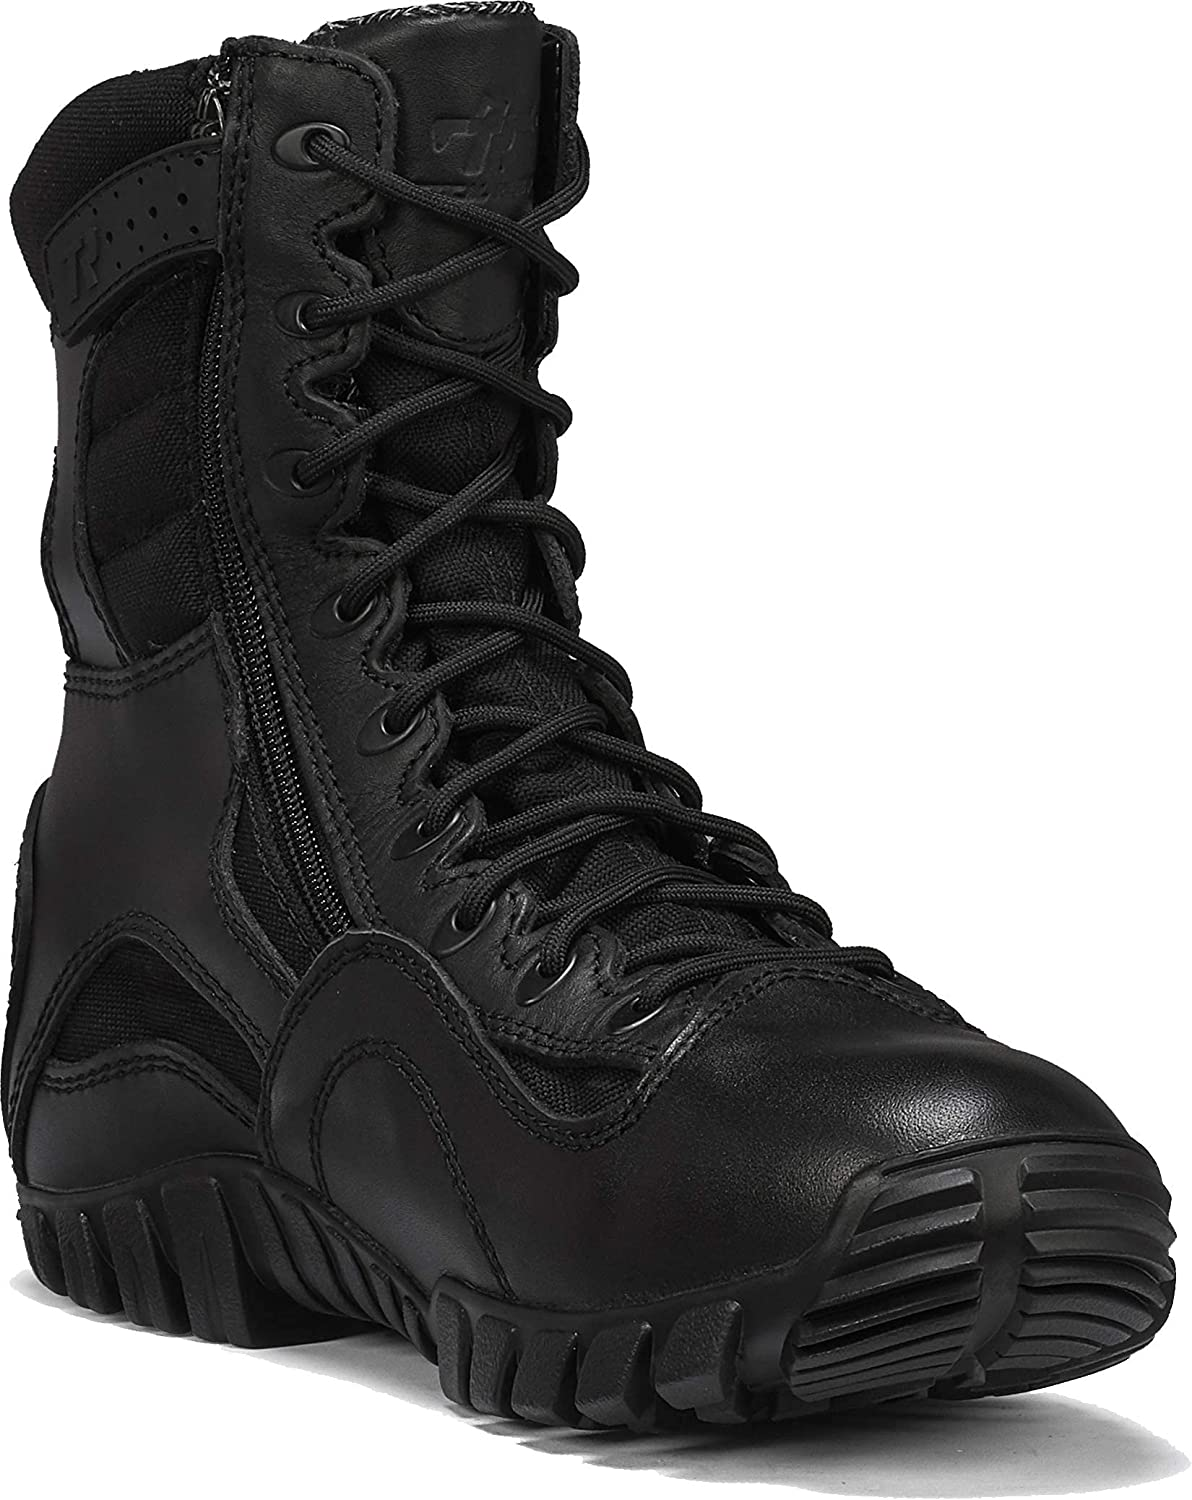 Max 72% OFF TACTICAL RESEARCH TR Men's Khyber Water WP Lightweight Purchase TR960Z 8